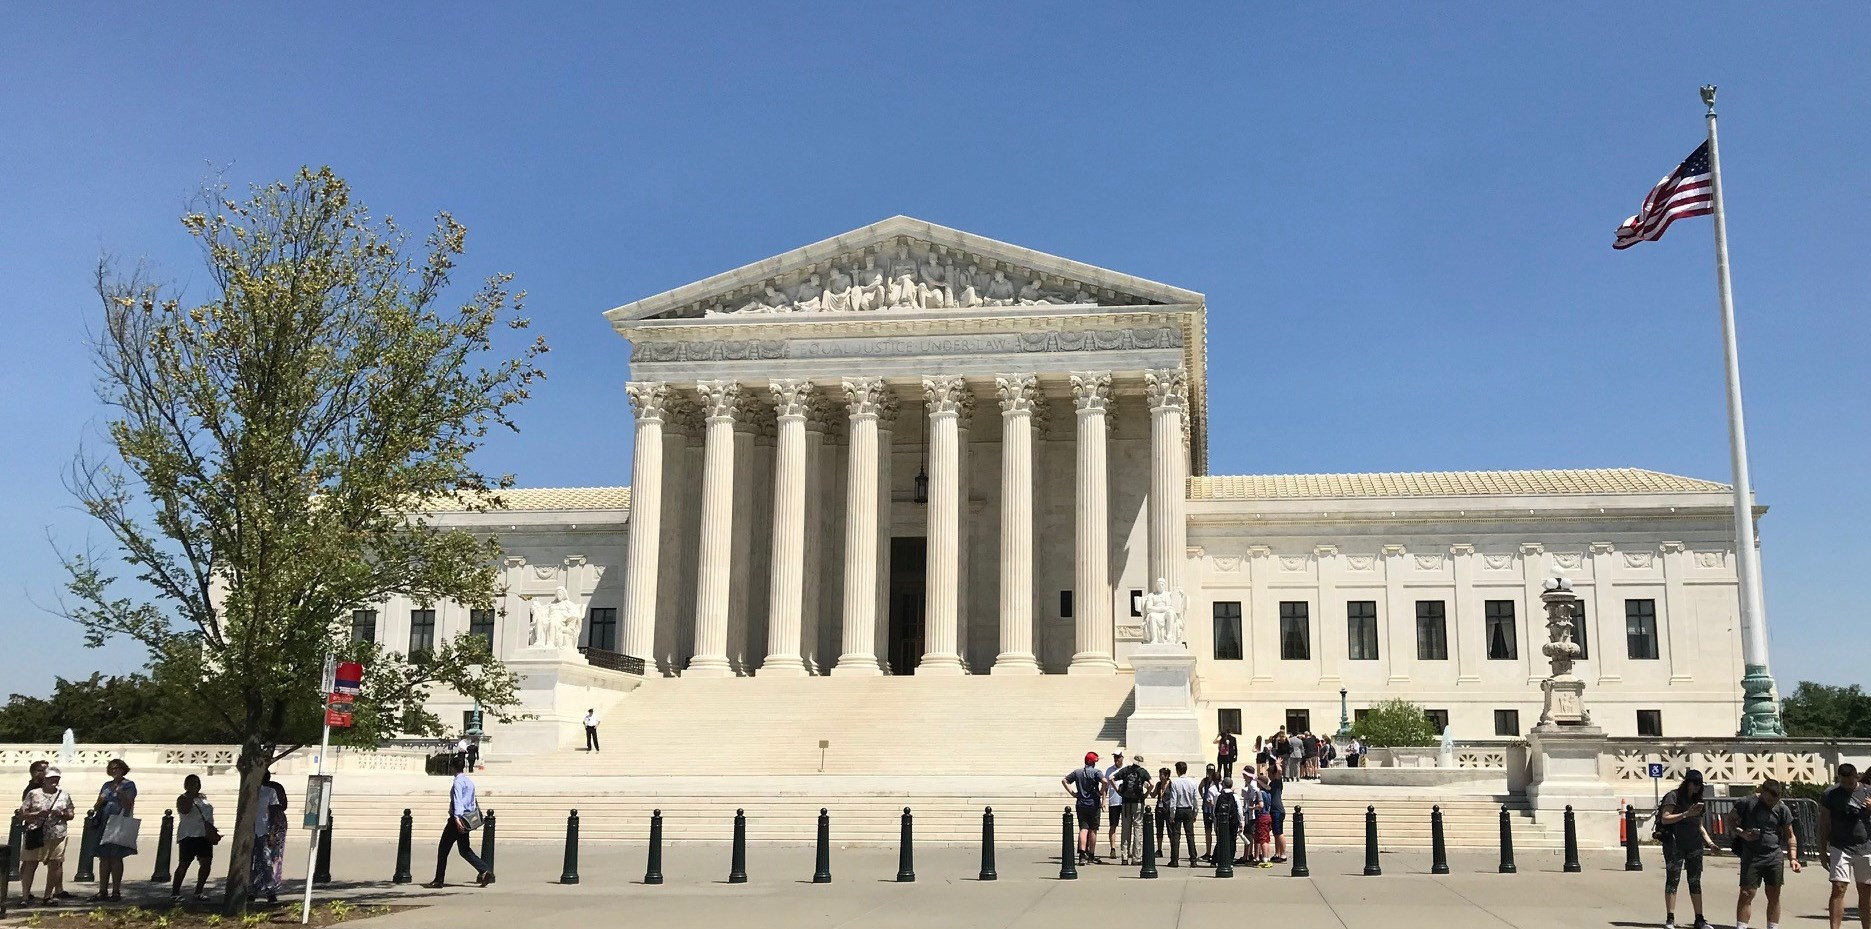 Recent court ruling likely to impact independent consultants in the U.S.